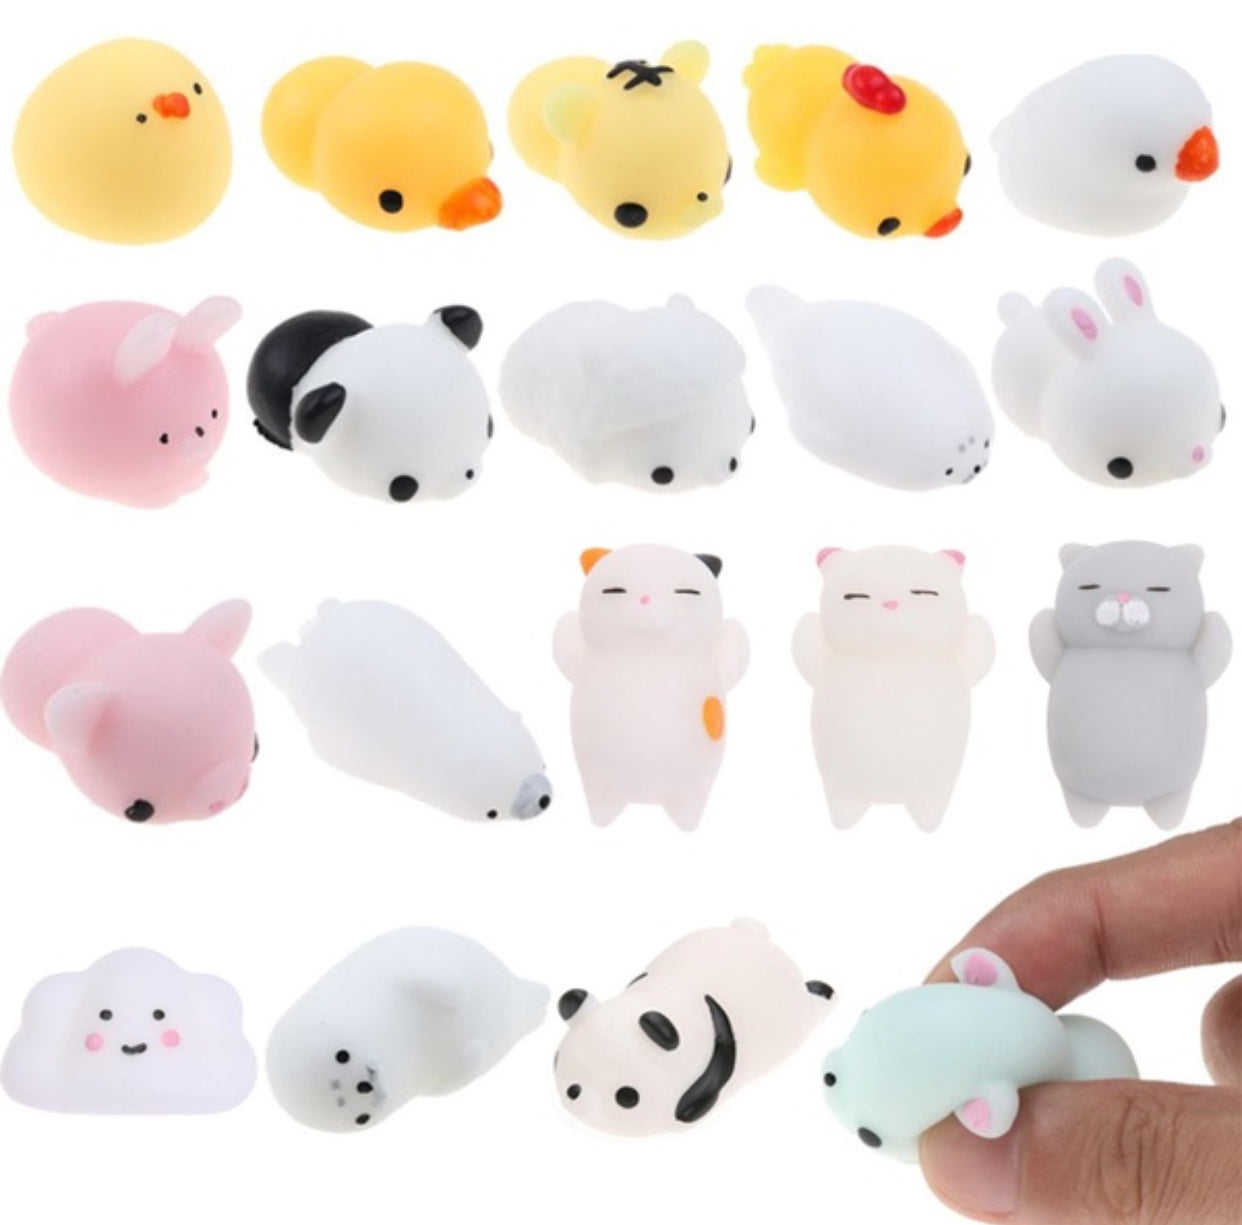 62200 ASSORTED ANIMAL GUMMY-16